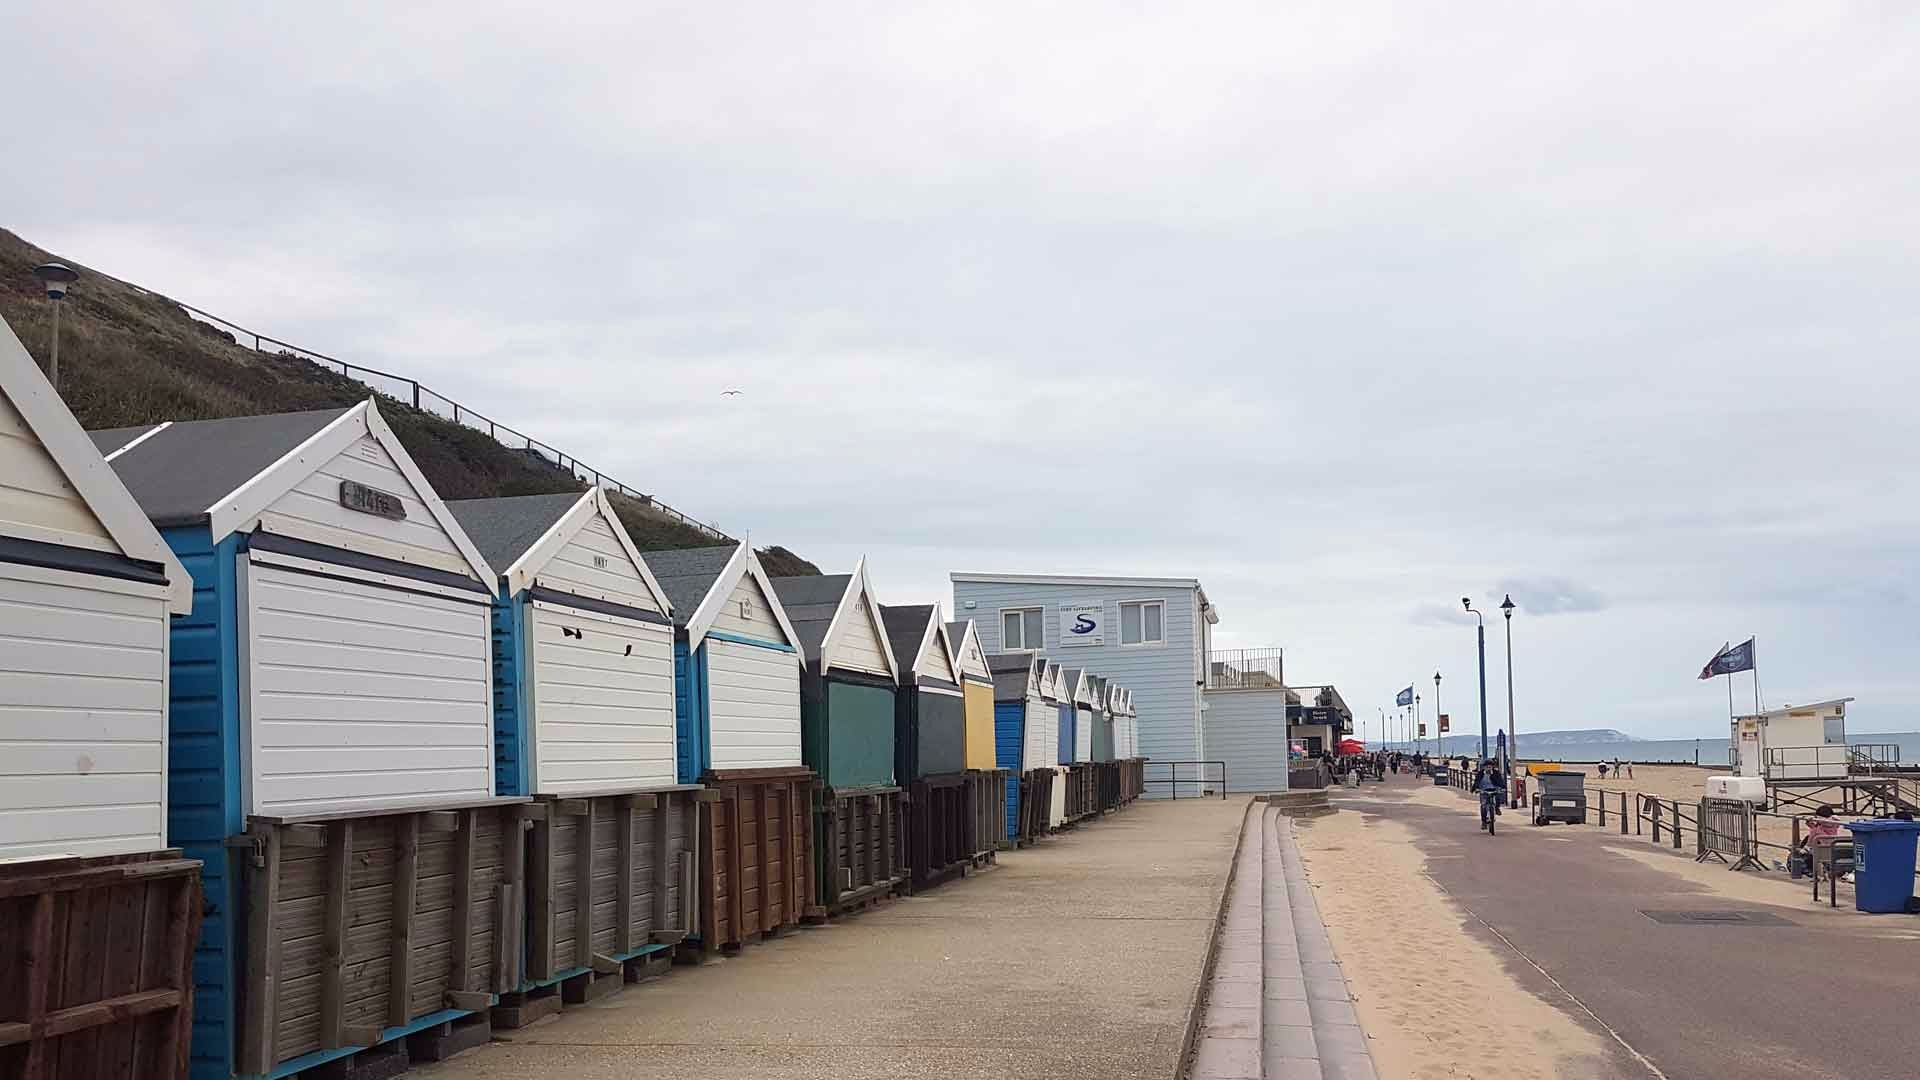 <b>southbourne-on-sea-gallery2.jpg</b> <br/> Huts in Southbourne before the Bistro on the beach area